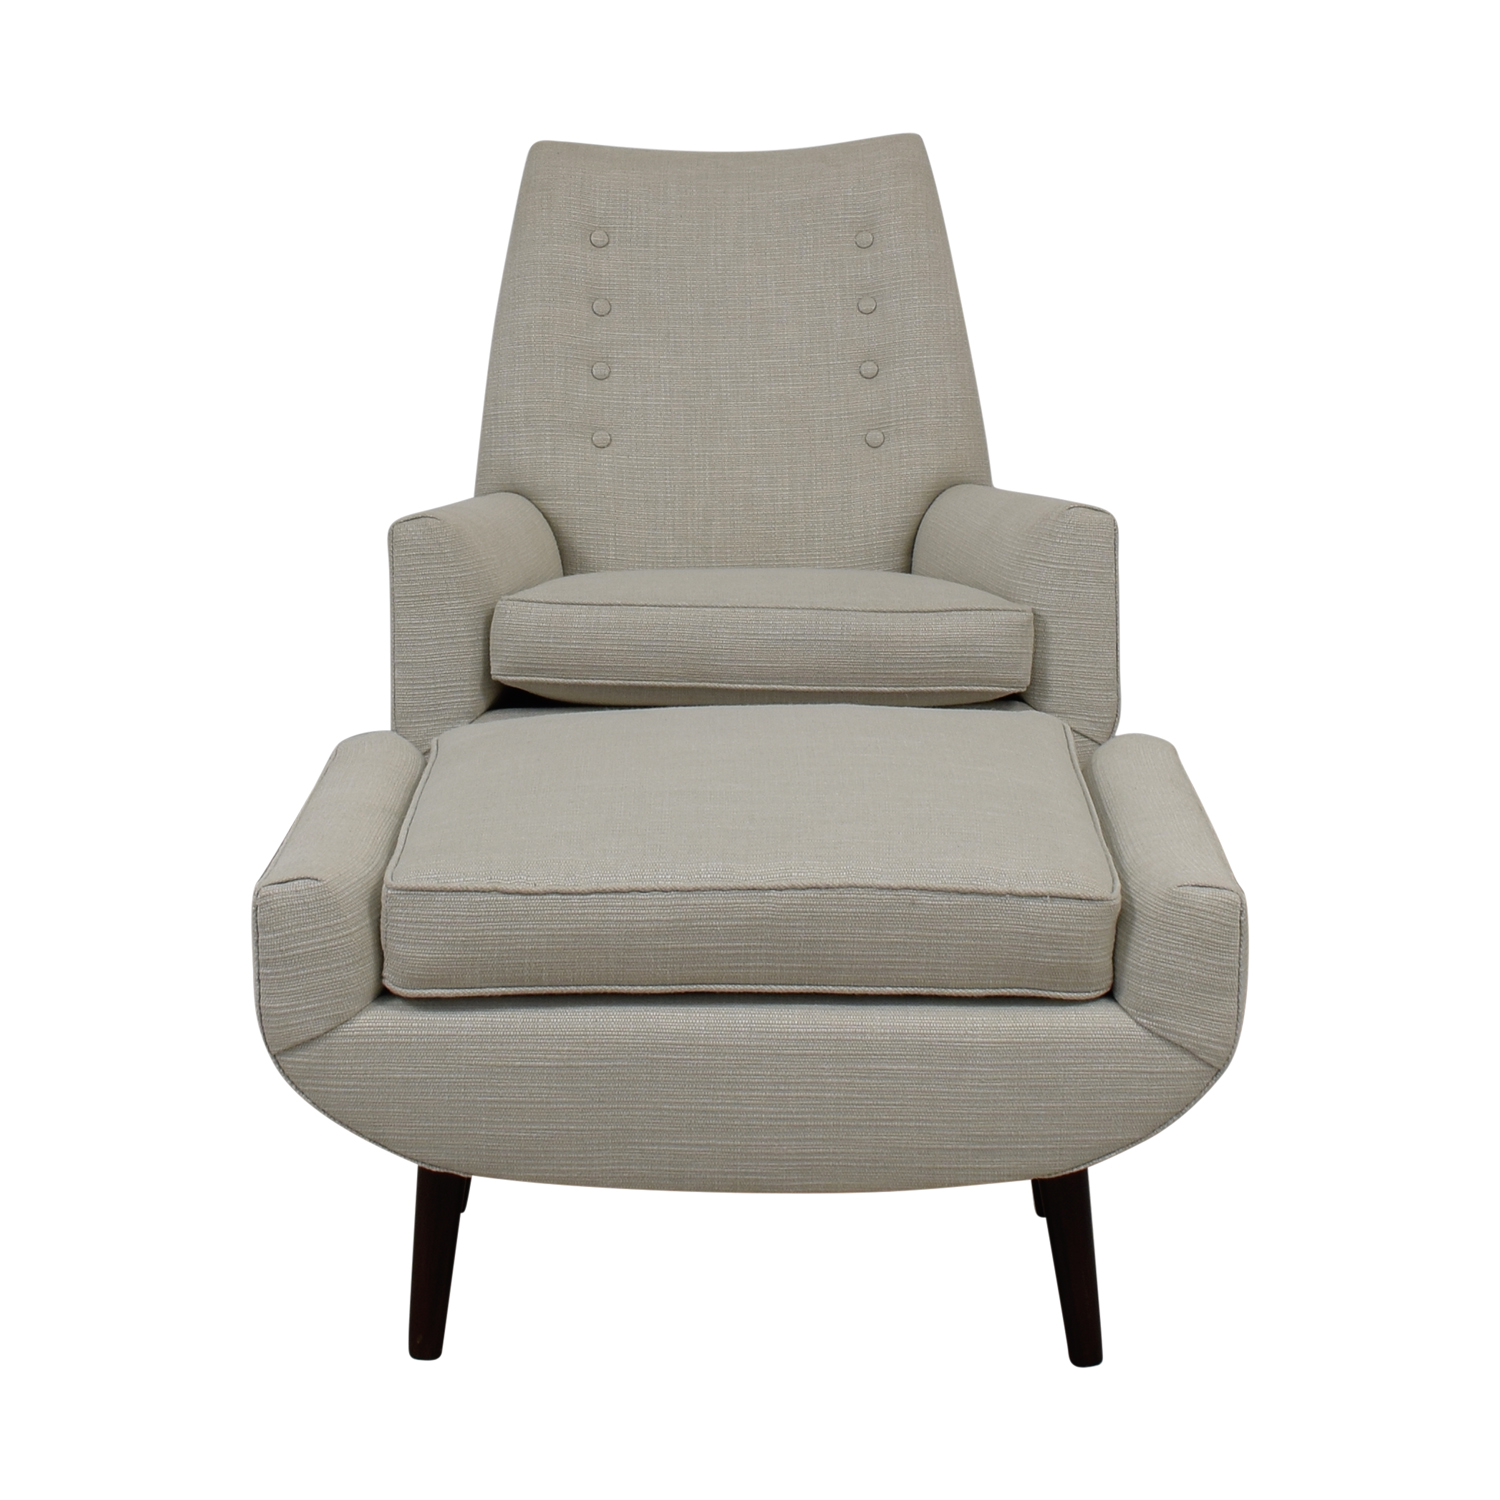 Furniture Masters Furniture Masters Fabric Chair with Ottoman